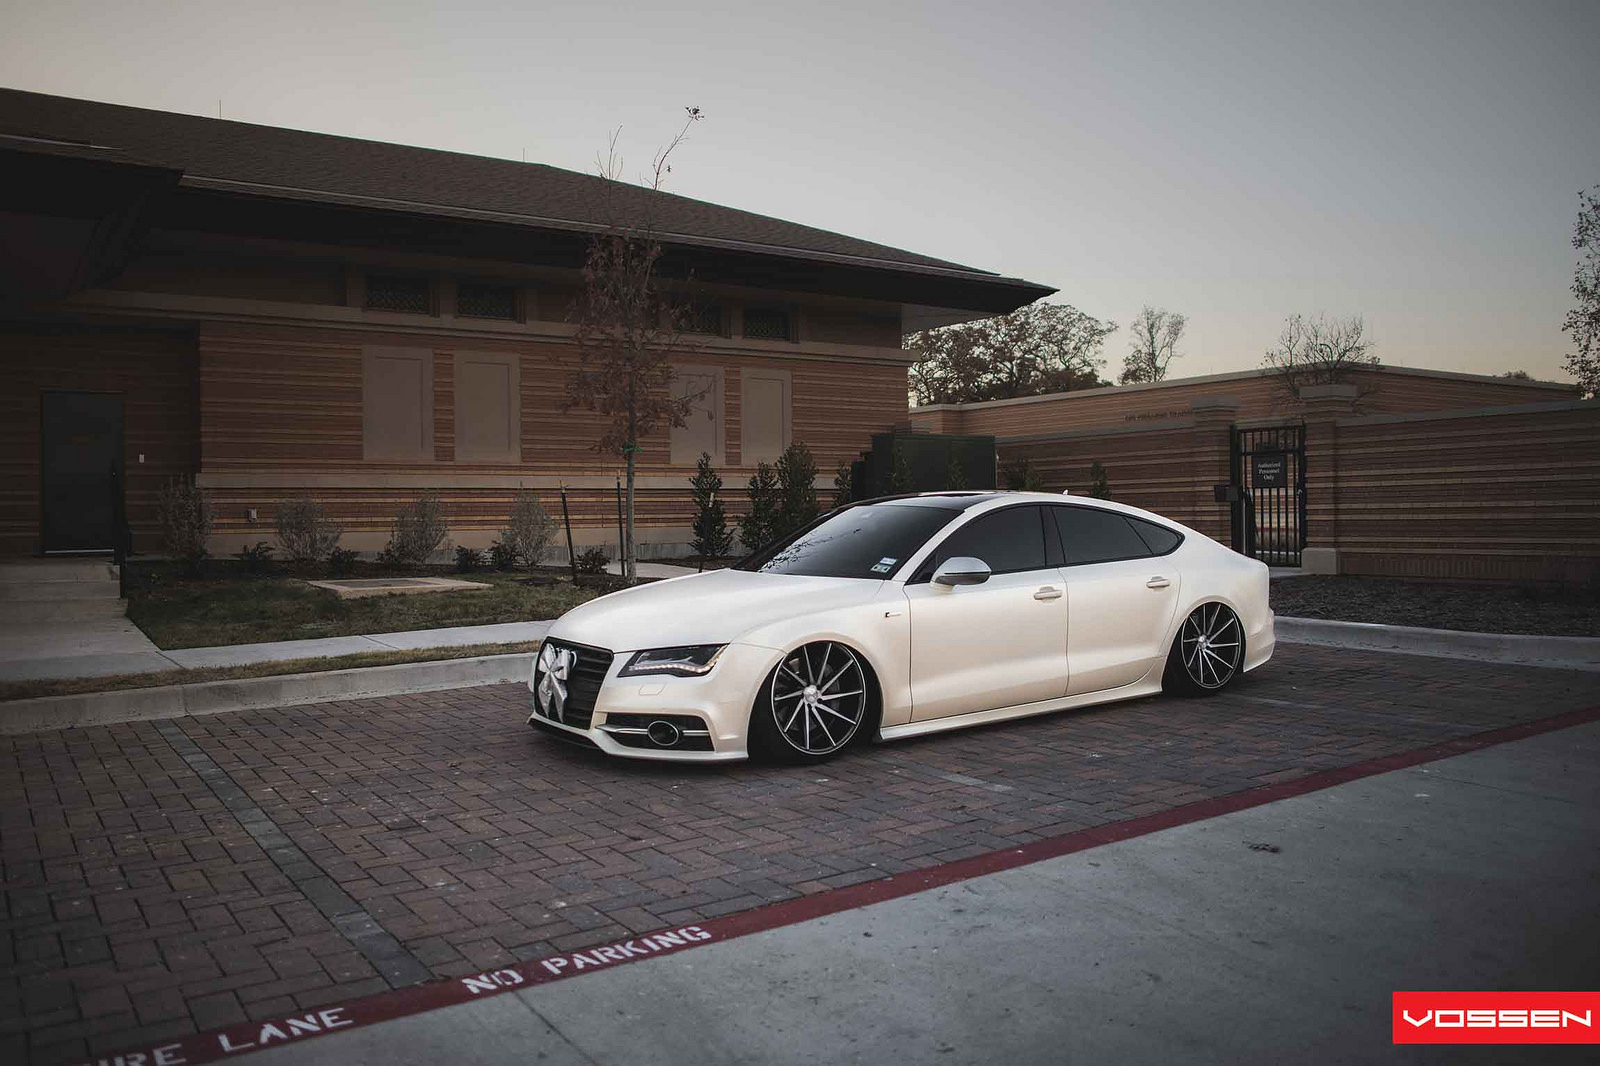 New Bmw 7 Series >> Slammed Audi A7 Looks Sharp on Vossen Directional Wheels - autoevolution